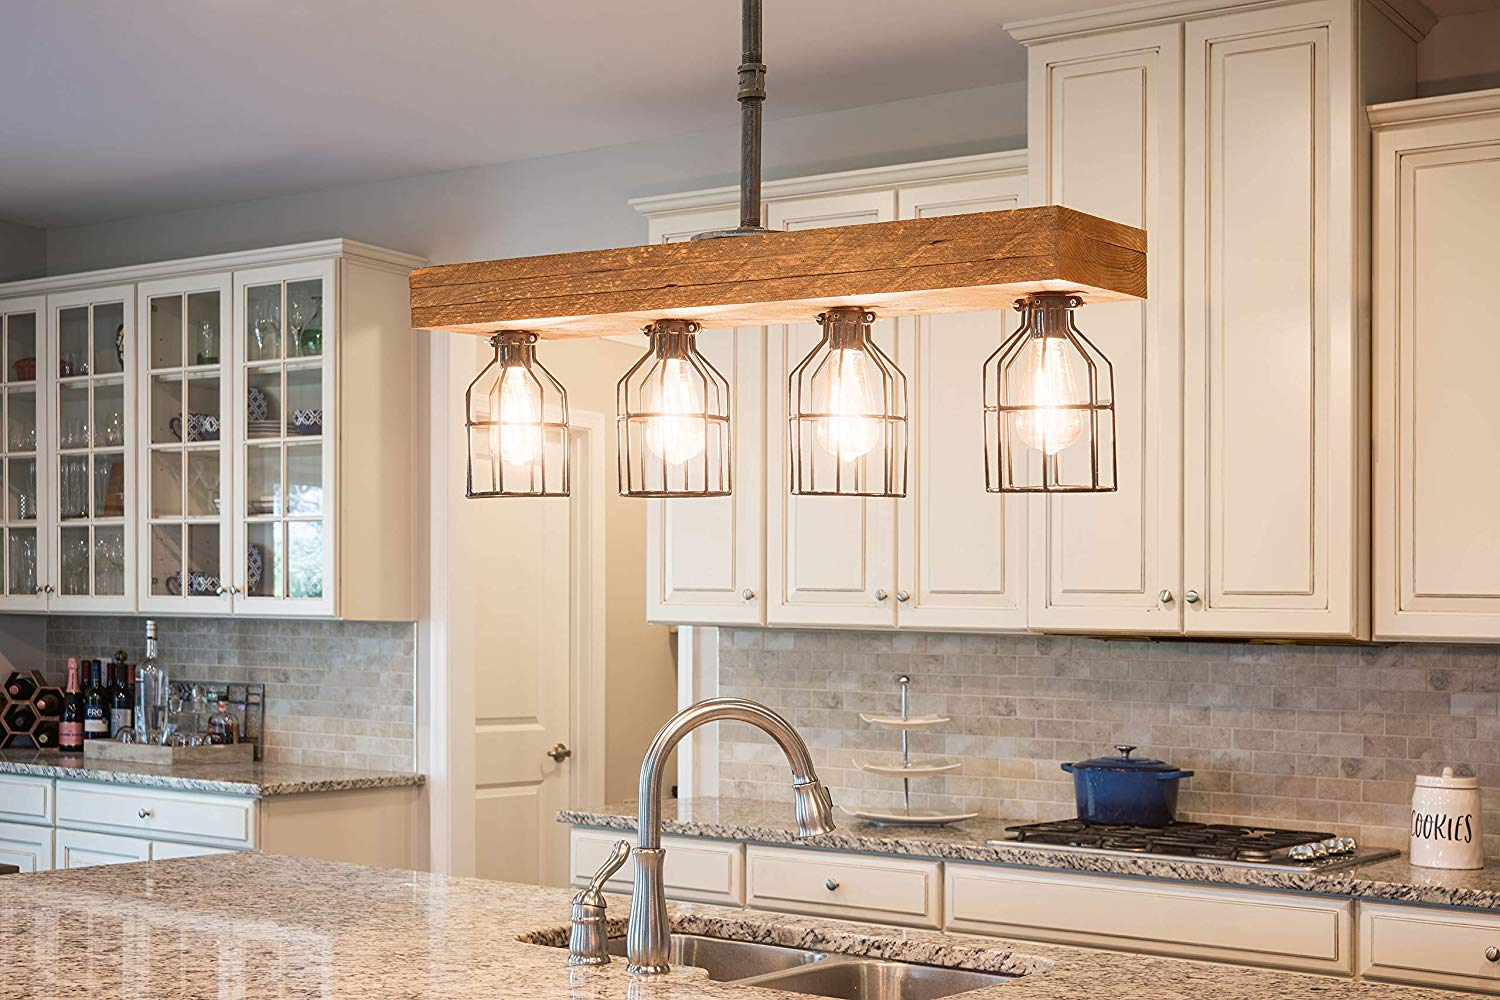 Top 10 Best Pendant Lights for Kitchen in 2020 - Trendy Reviewed